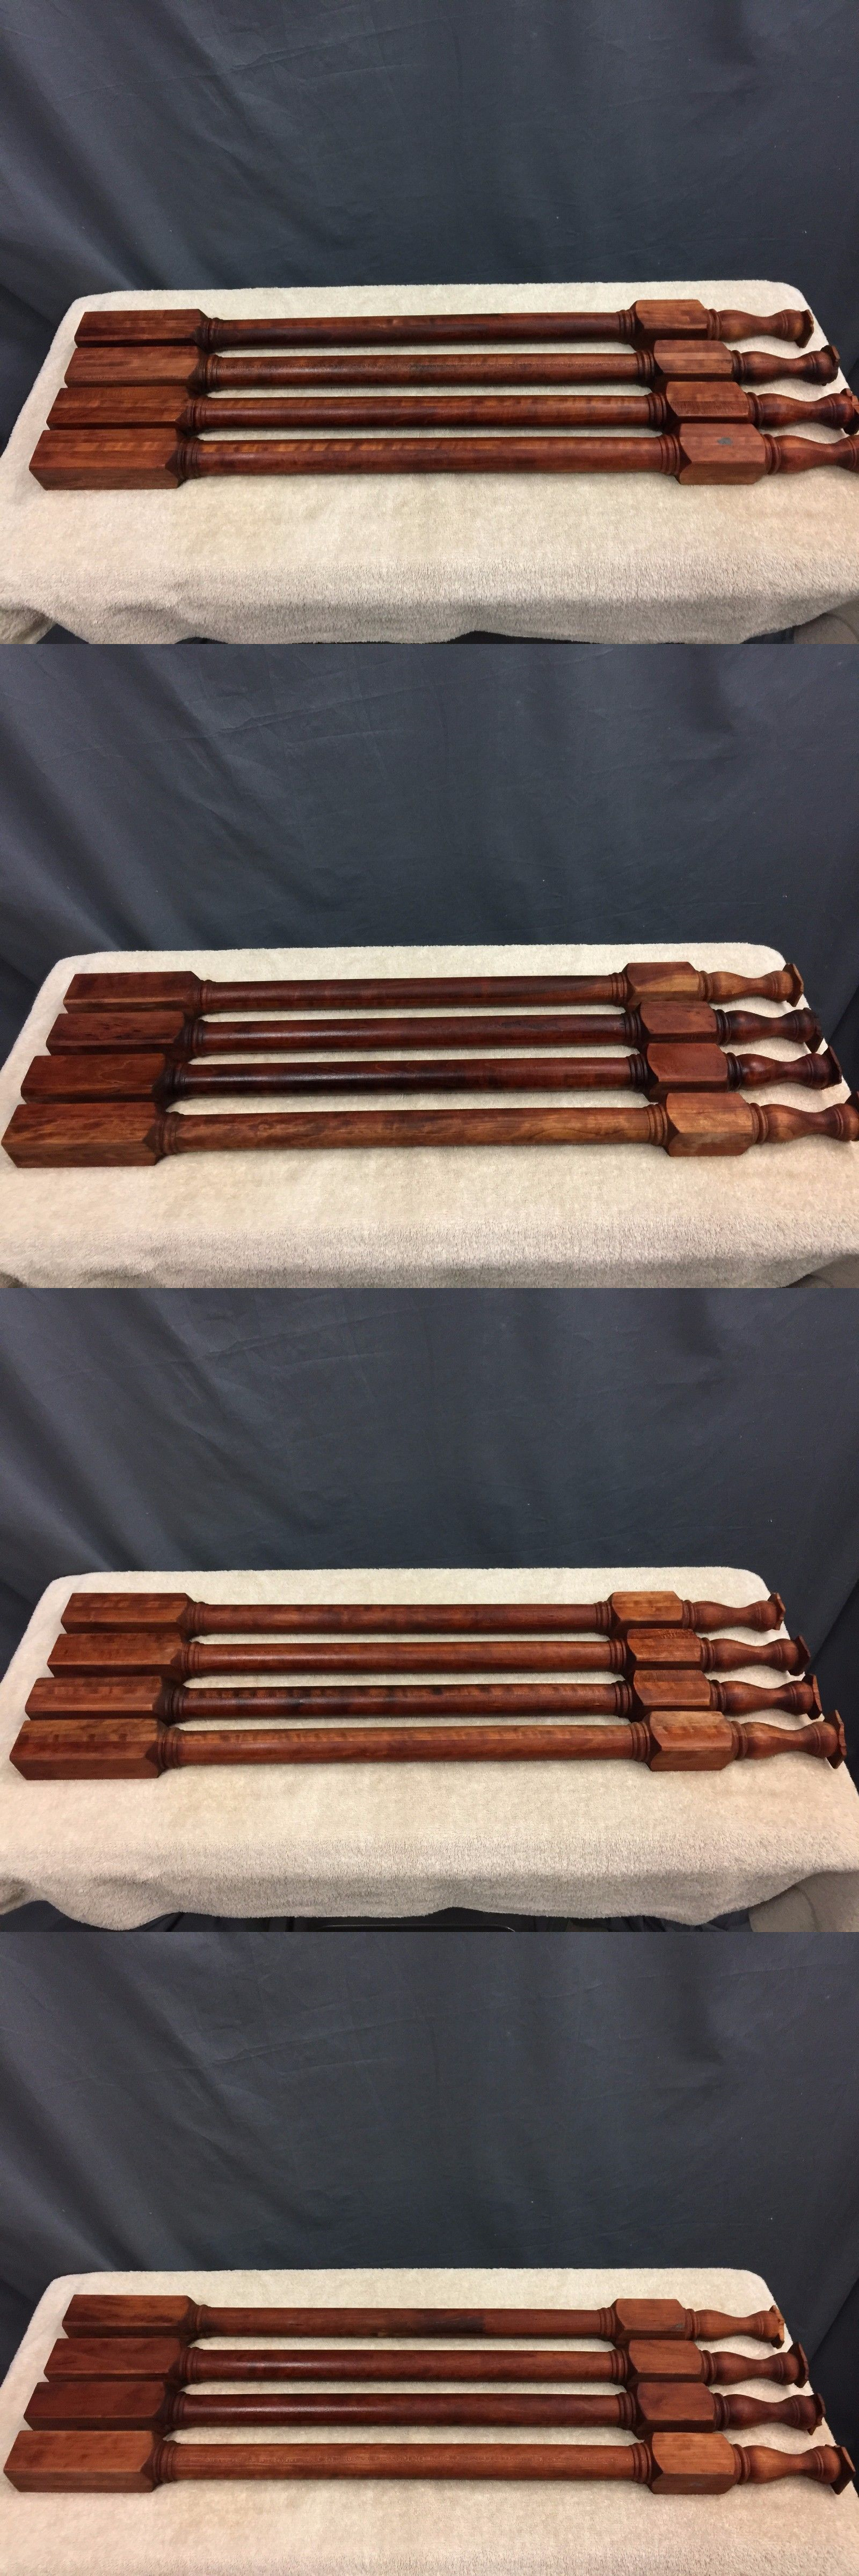 Furniture Parts And Accessories 179690: Set 4 Cherry Table Legs 33X2 Inches  Sanded And Stained